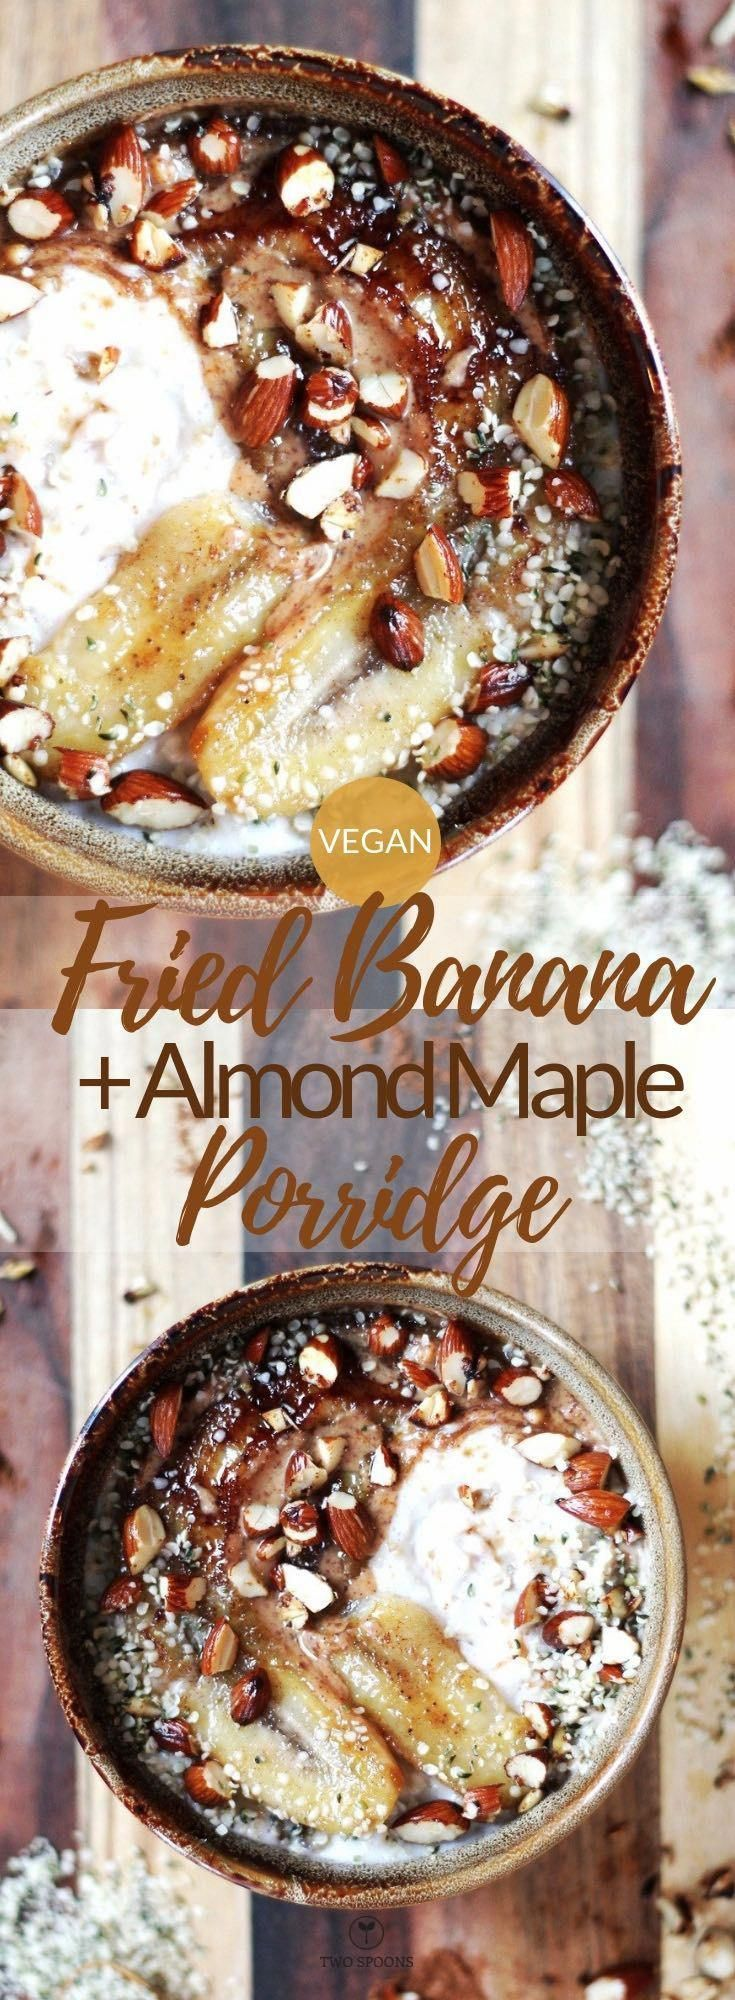 FRIED BANANA AND ALMOND MAPLE PORRIDGE | Vegan, Healthy, Easy | TWO SPOONS